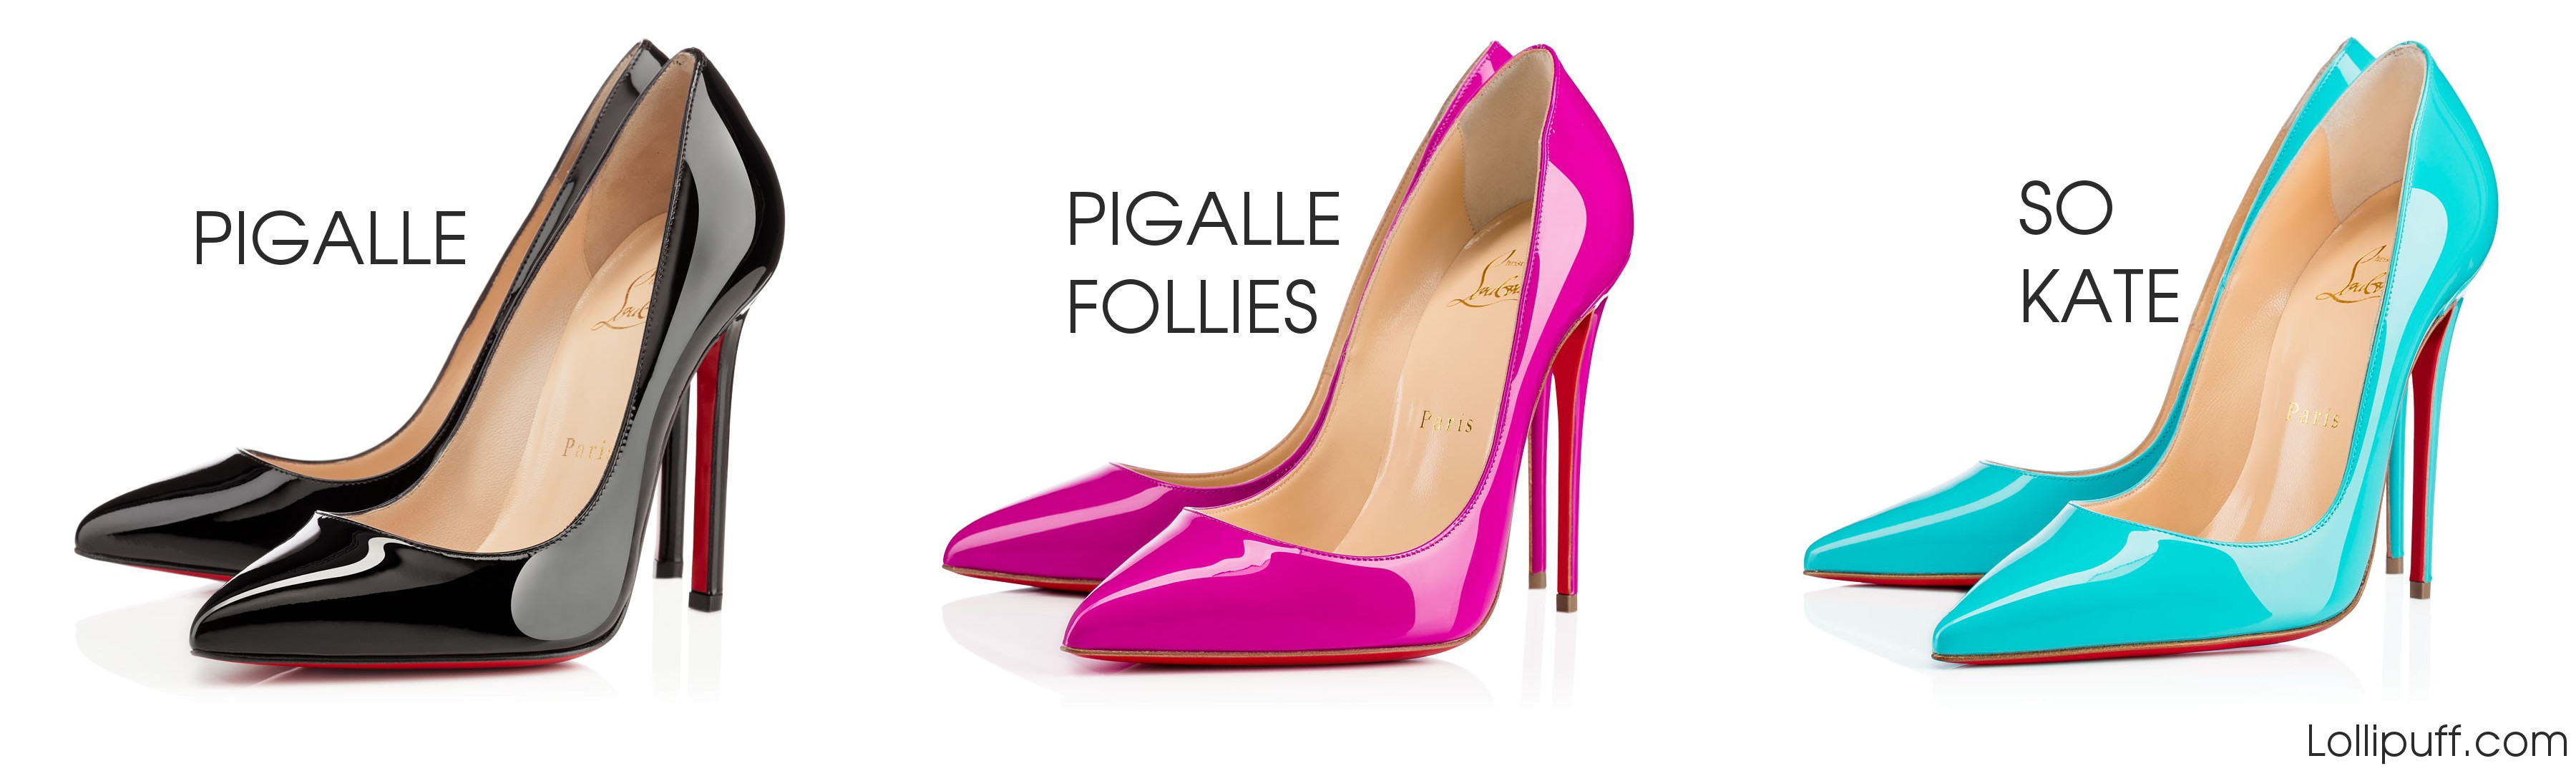 premier taux 5426b 5c4b4 Christian Louboutin Pigalle vs Pigalle Follies vs So Kate ...